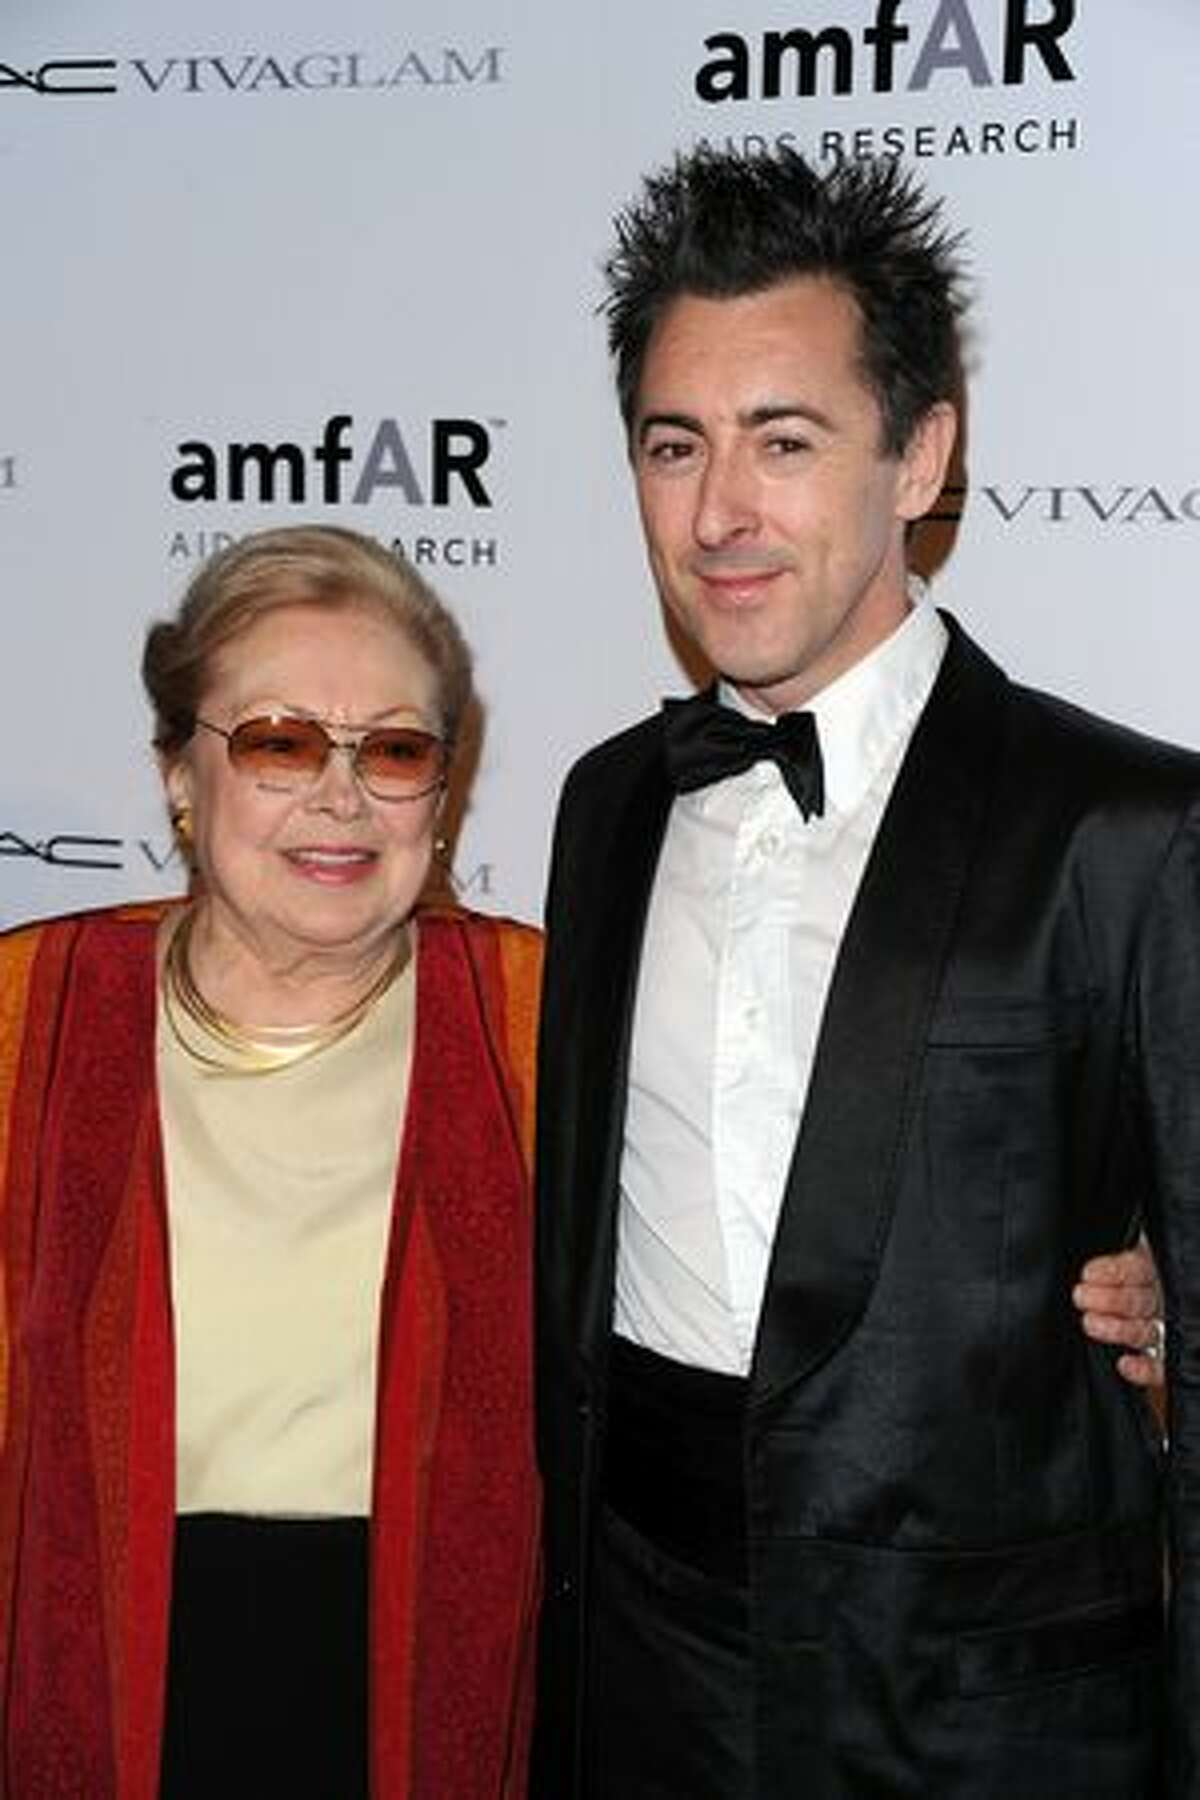 Dr. Mathilde Krim and actor Alan Cumming attend the amfAR New York Gala co-sponsored by M.A.C. Cosmetics to Kick Off Fall 2010 Fashion Week at Cipriani 42nd Street in New York, New York.